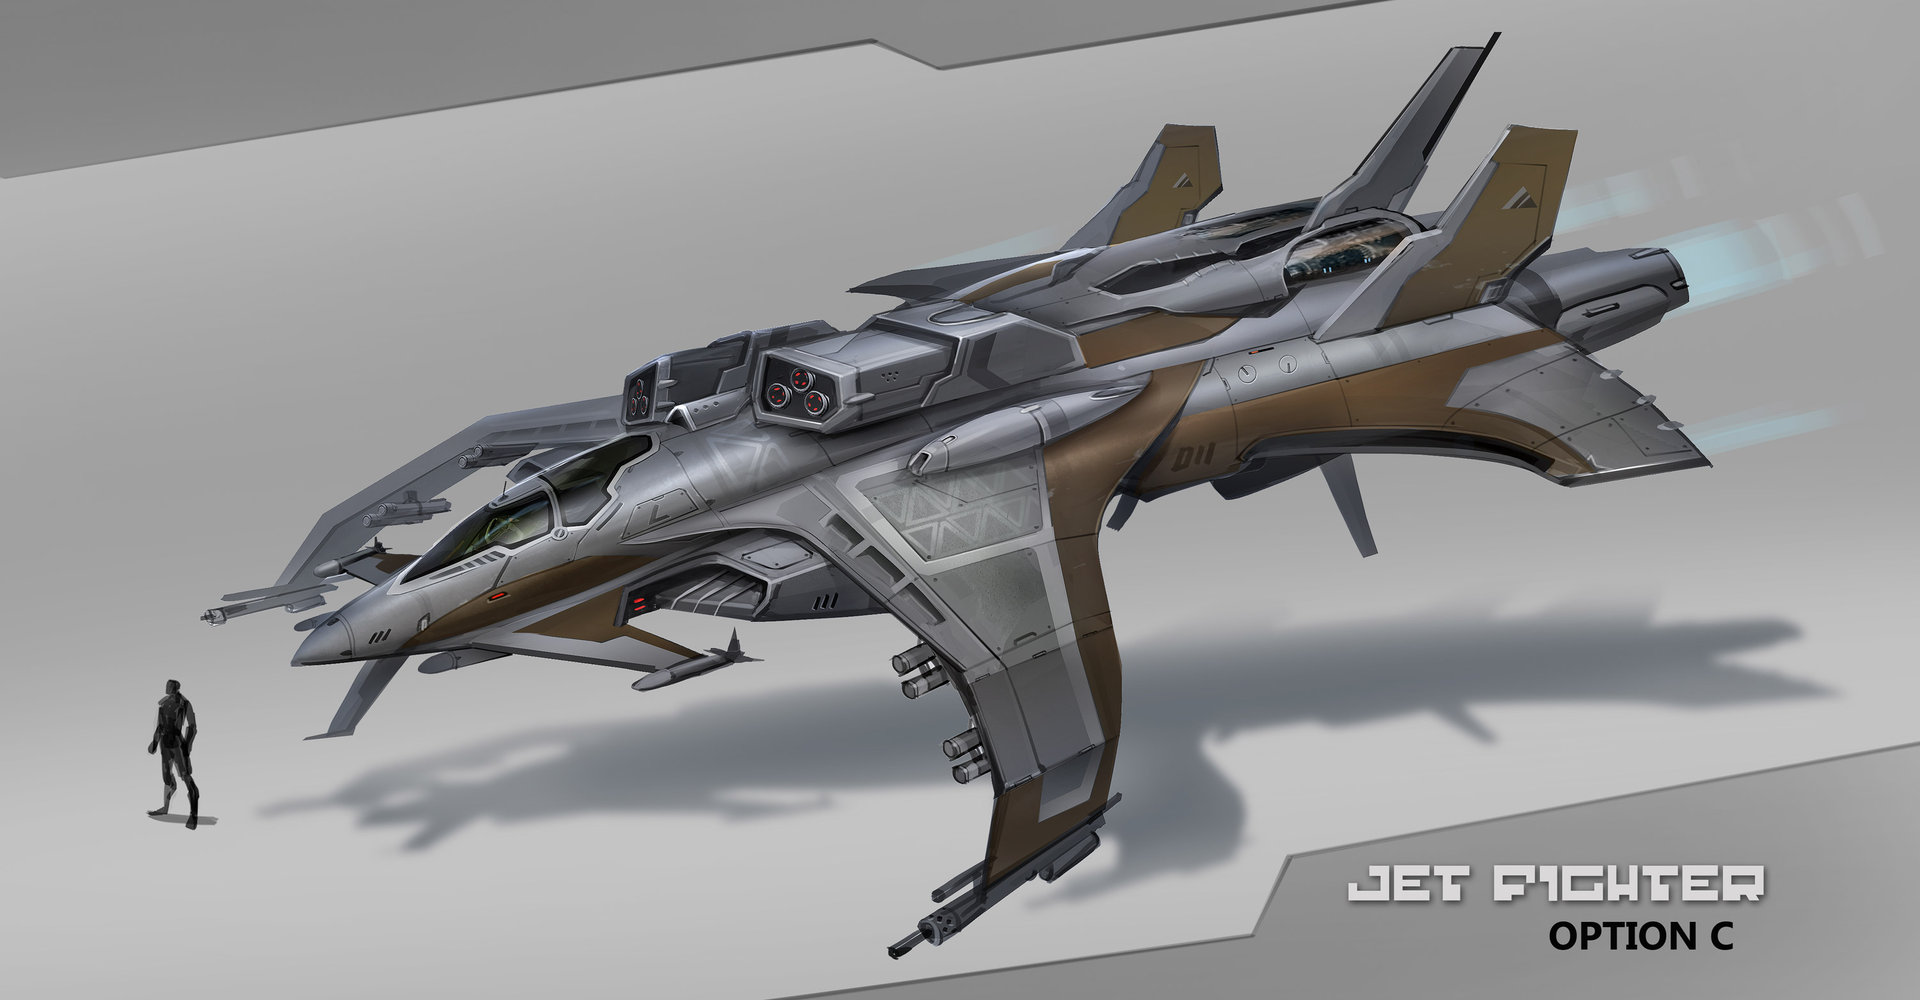 Jeremy chong jet fighter option c